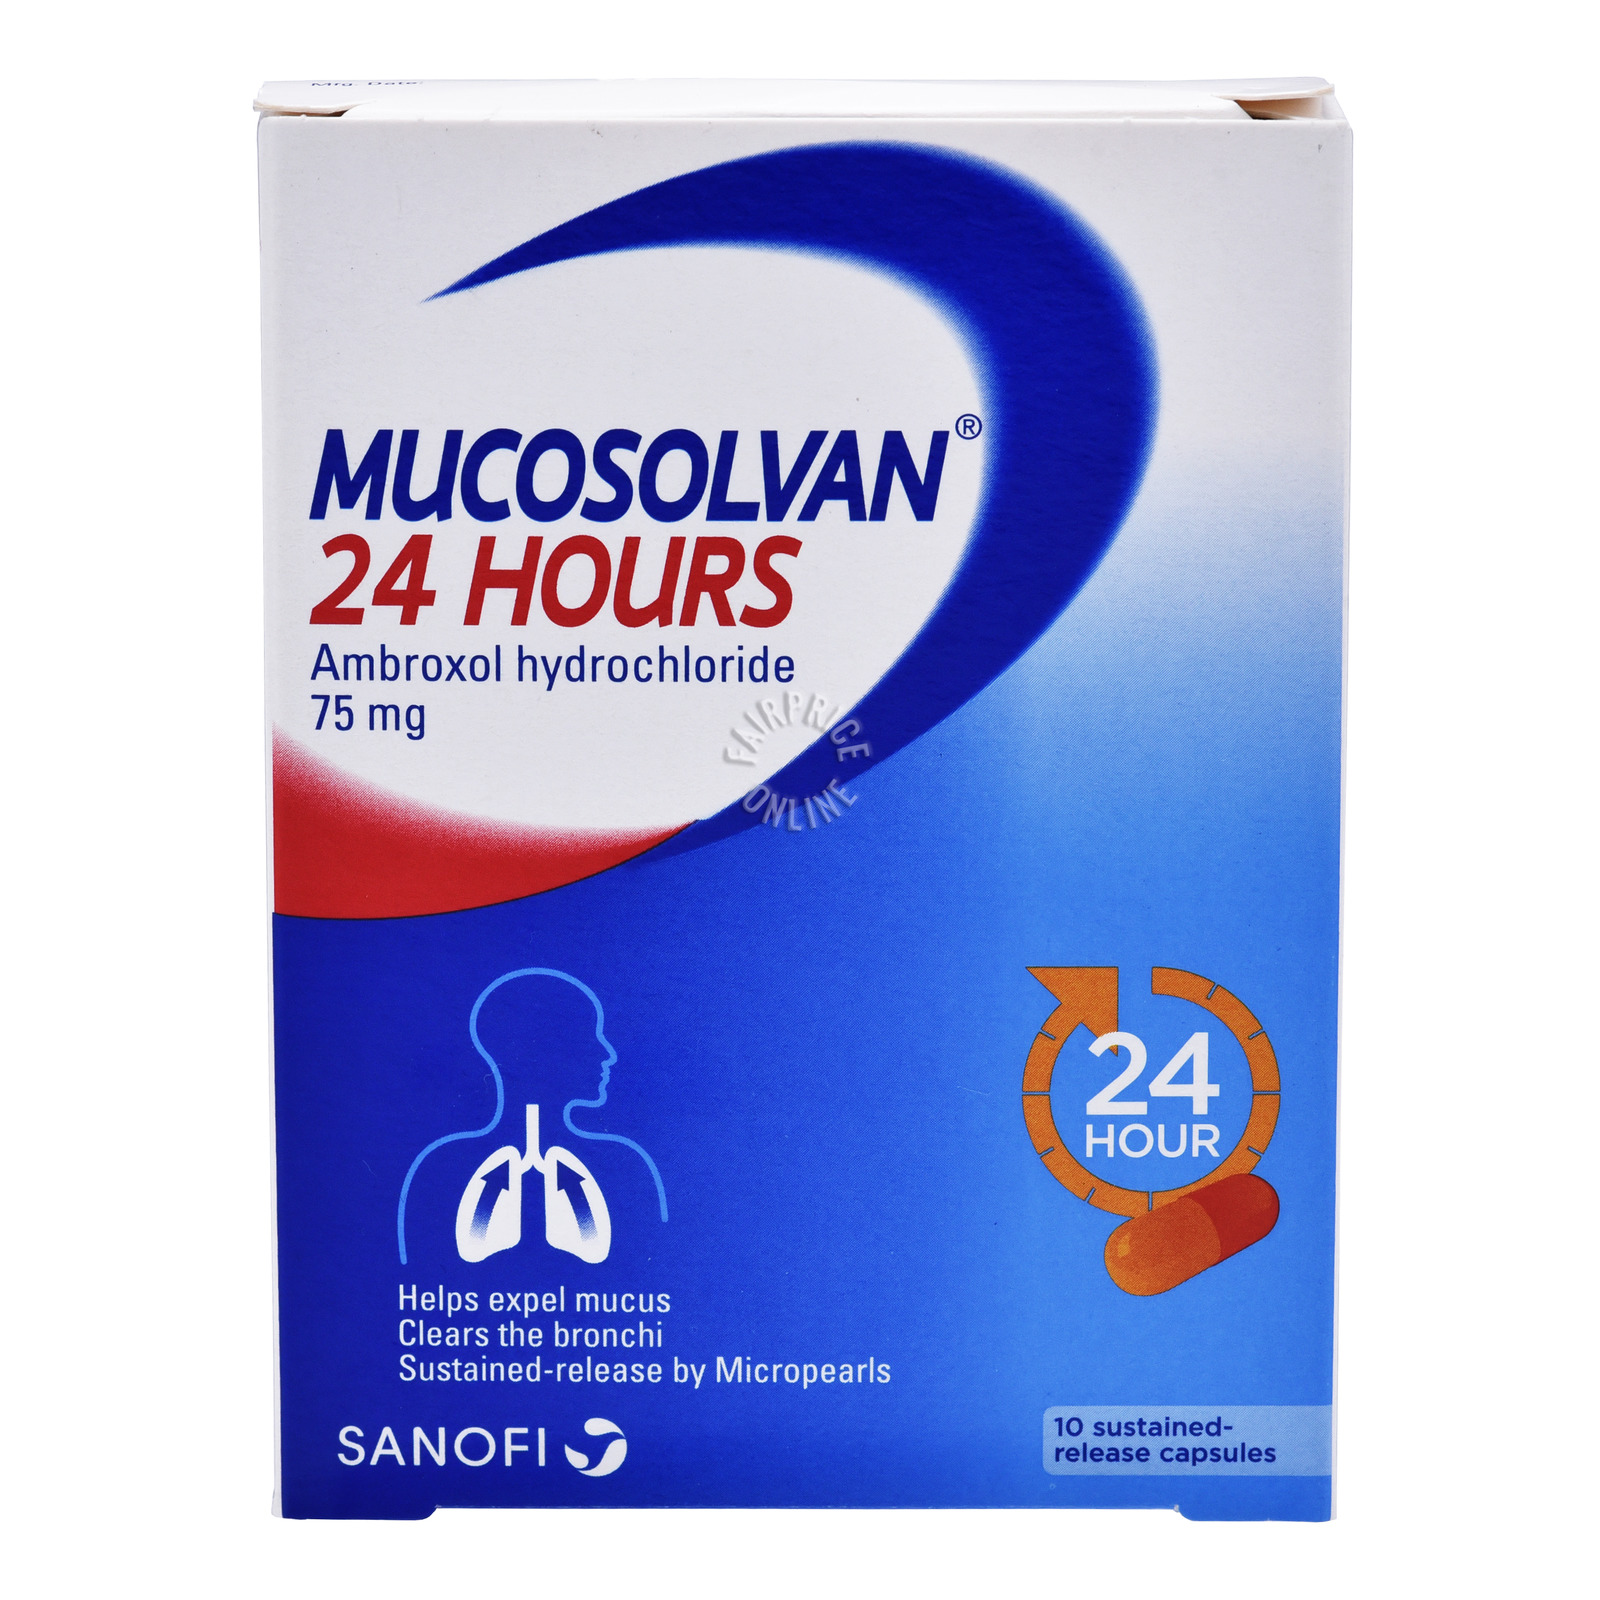 MUCOSOLVAN 24 hours ambroxol hydrochloride 75mg 10 capsules